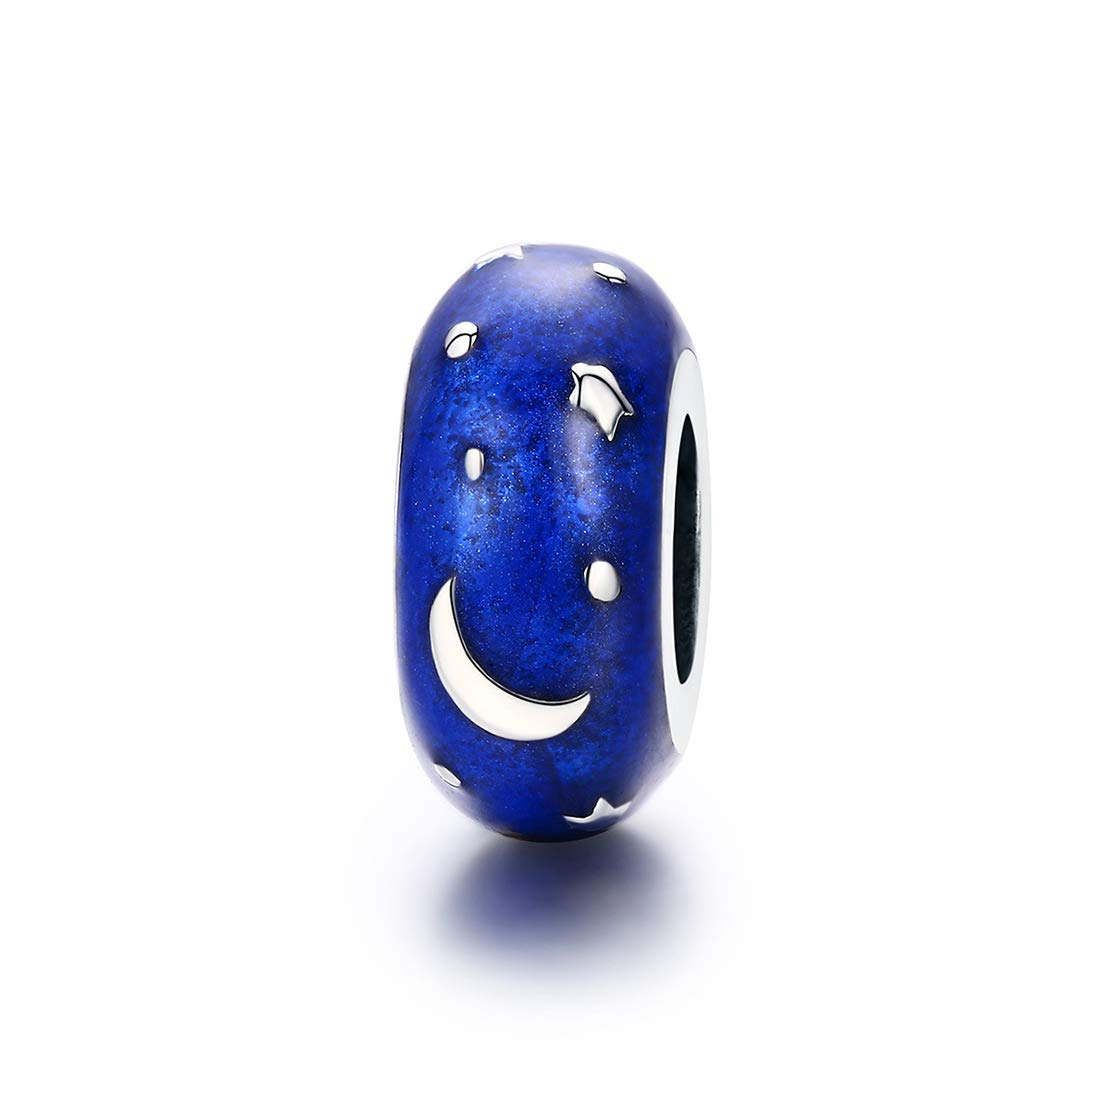 DALARAN Clip Stopper Charms Sterling Silver Rondelle Blue Moon Star Spacer Bead for Bracelets